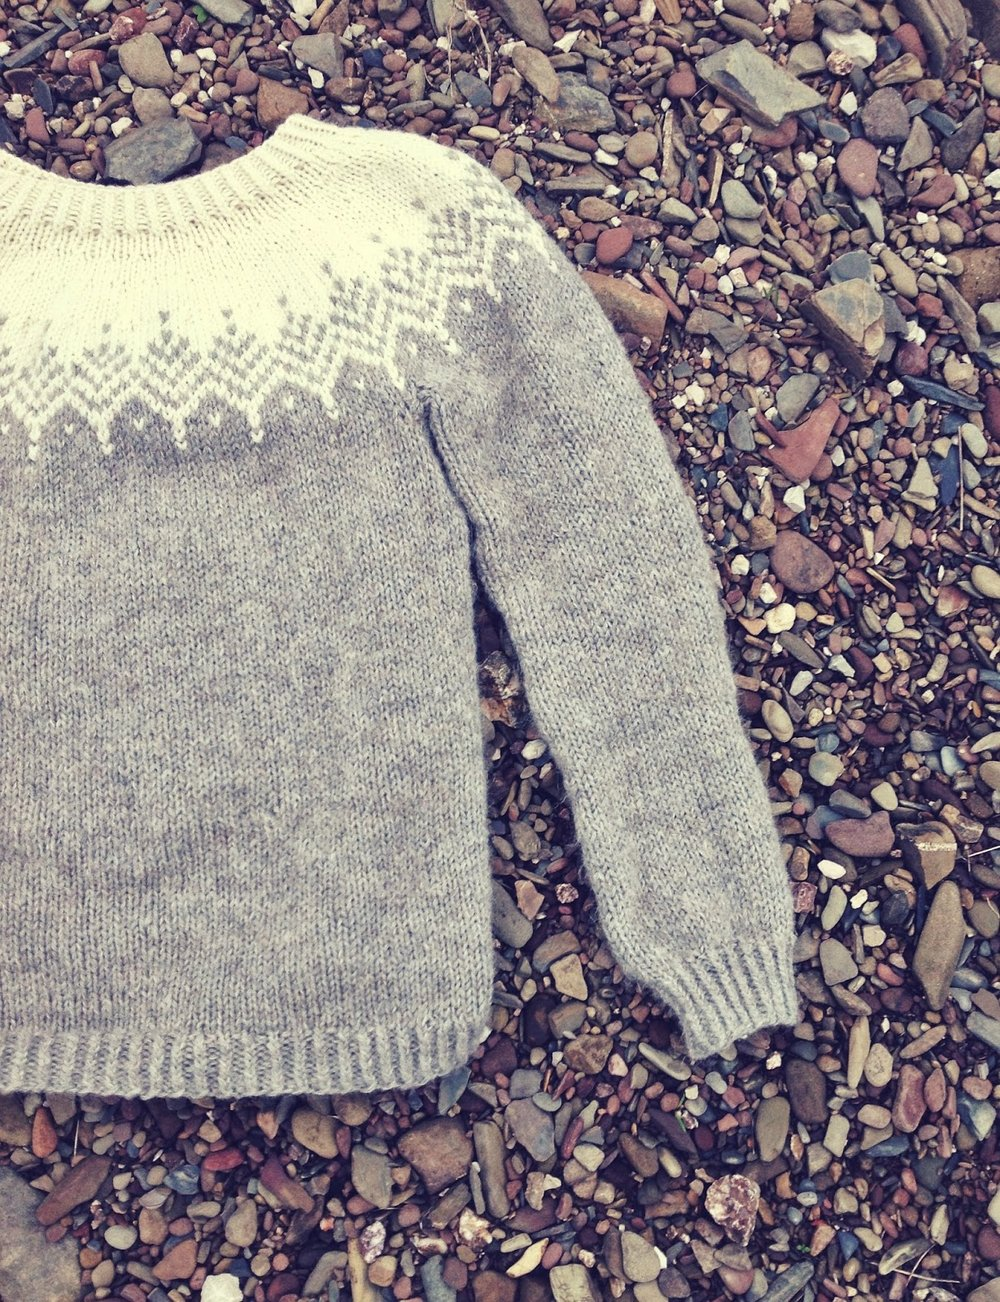 The Fluffy Feather sweater by Veronika Lindberg